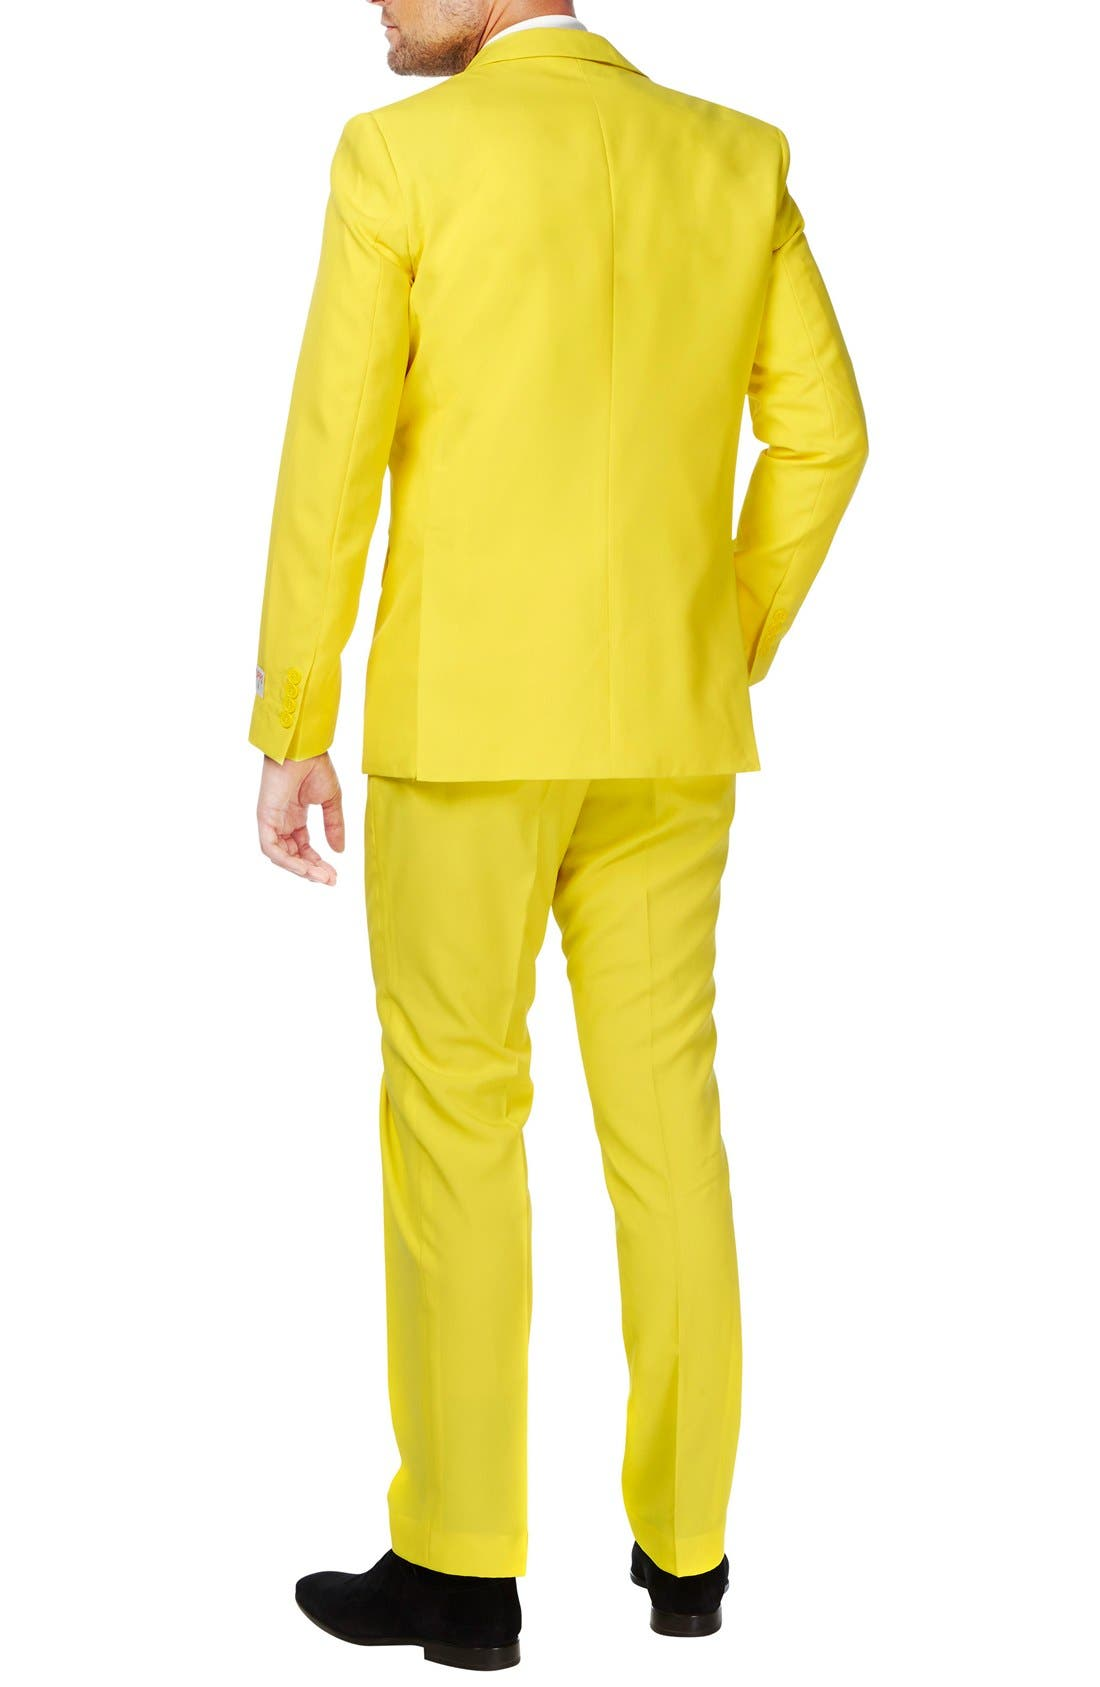 'Yellow Fellow' Trim Fit Two-Piece Suit with Tie,                             Alternate thumbnail 2, color,                             700